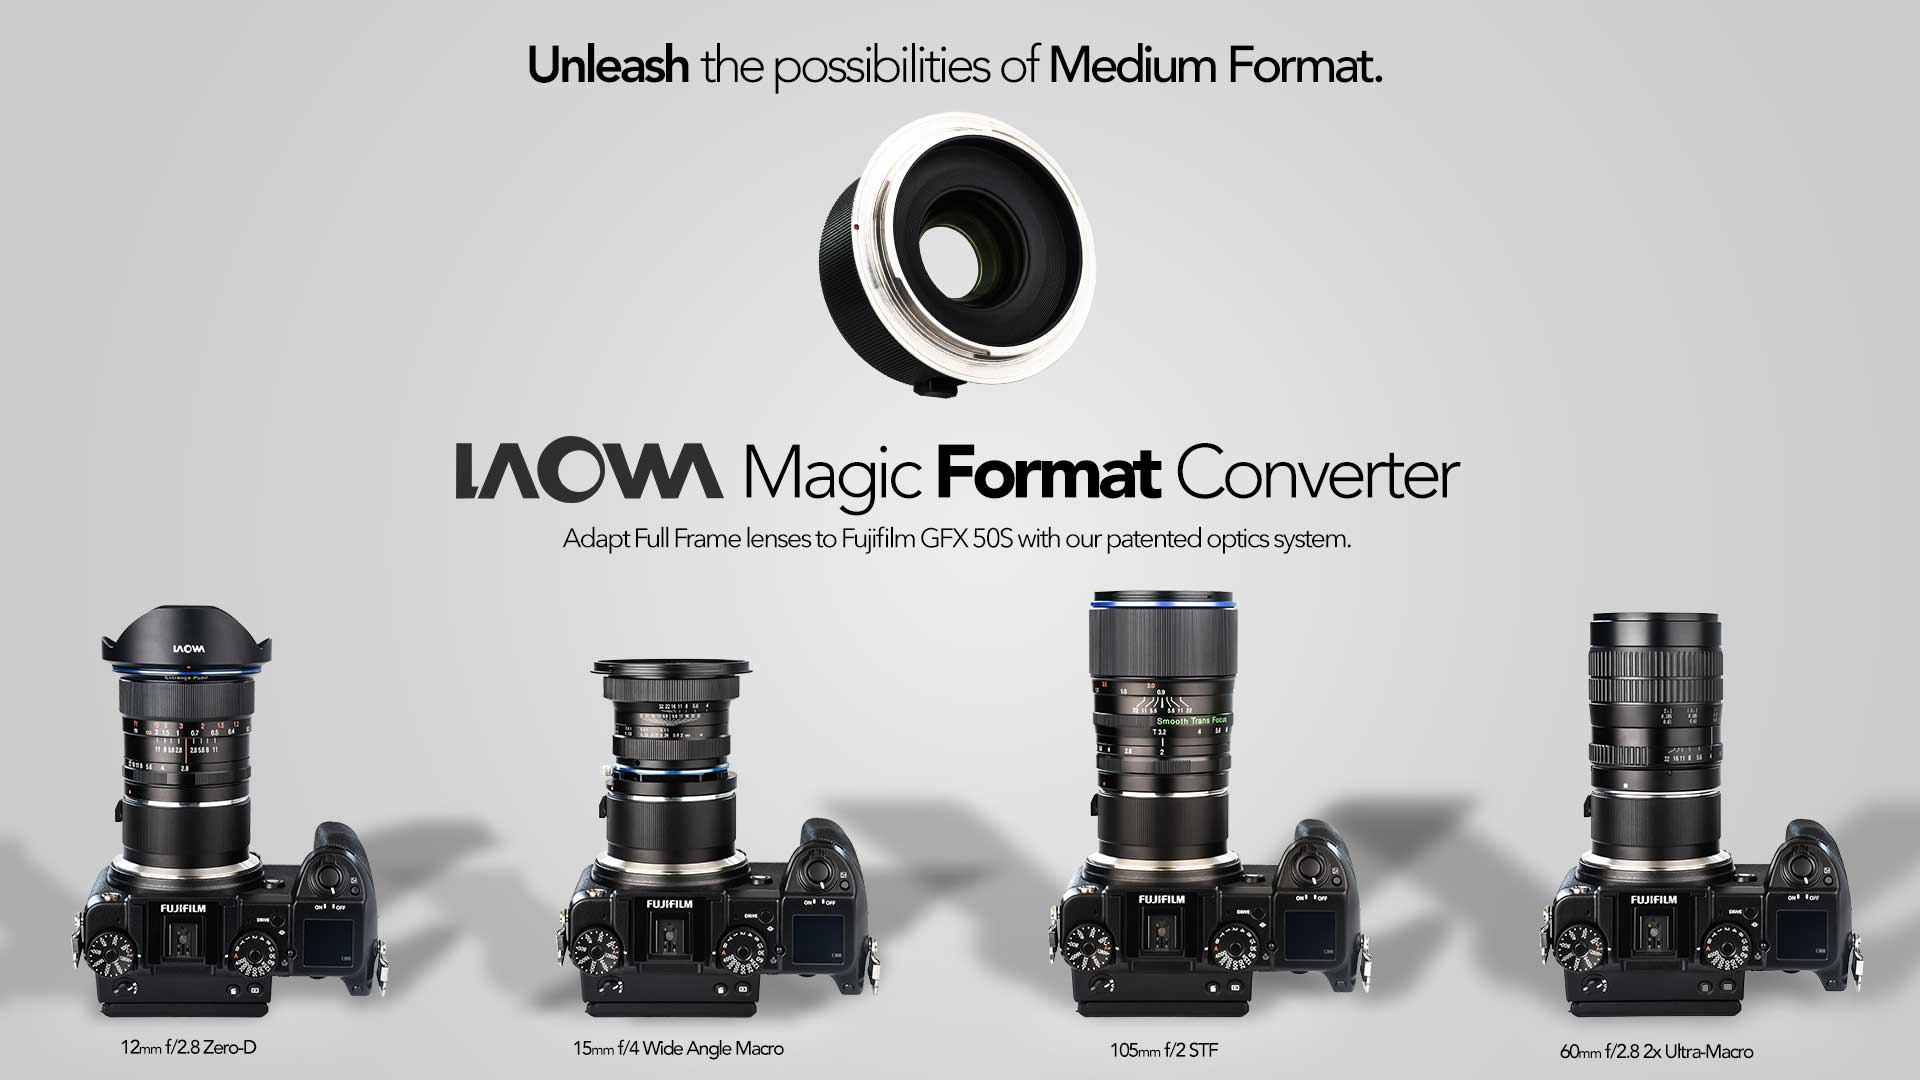 The Laowa Venus Optics Magic Format Converter Increases the Imaging Circle for Full Frame Lenses to Fujifilm GFX